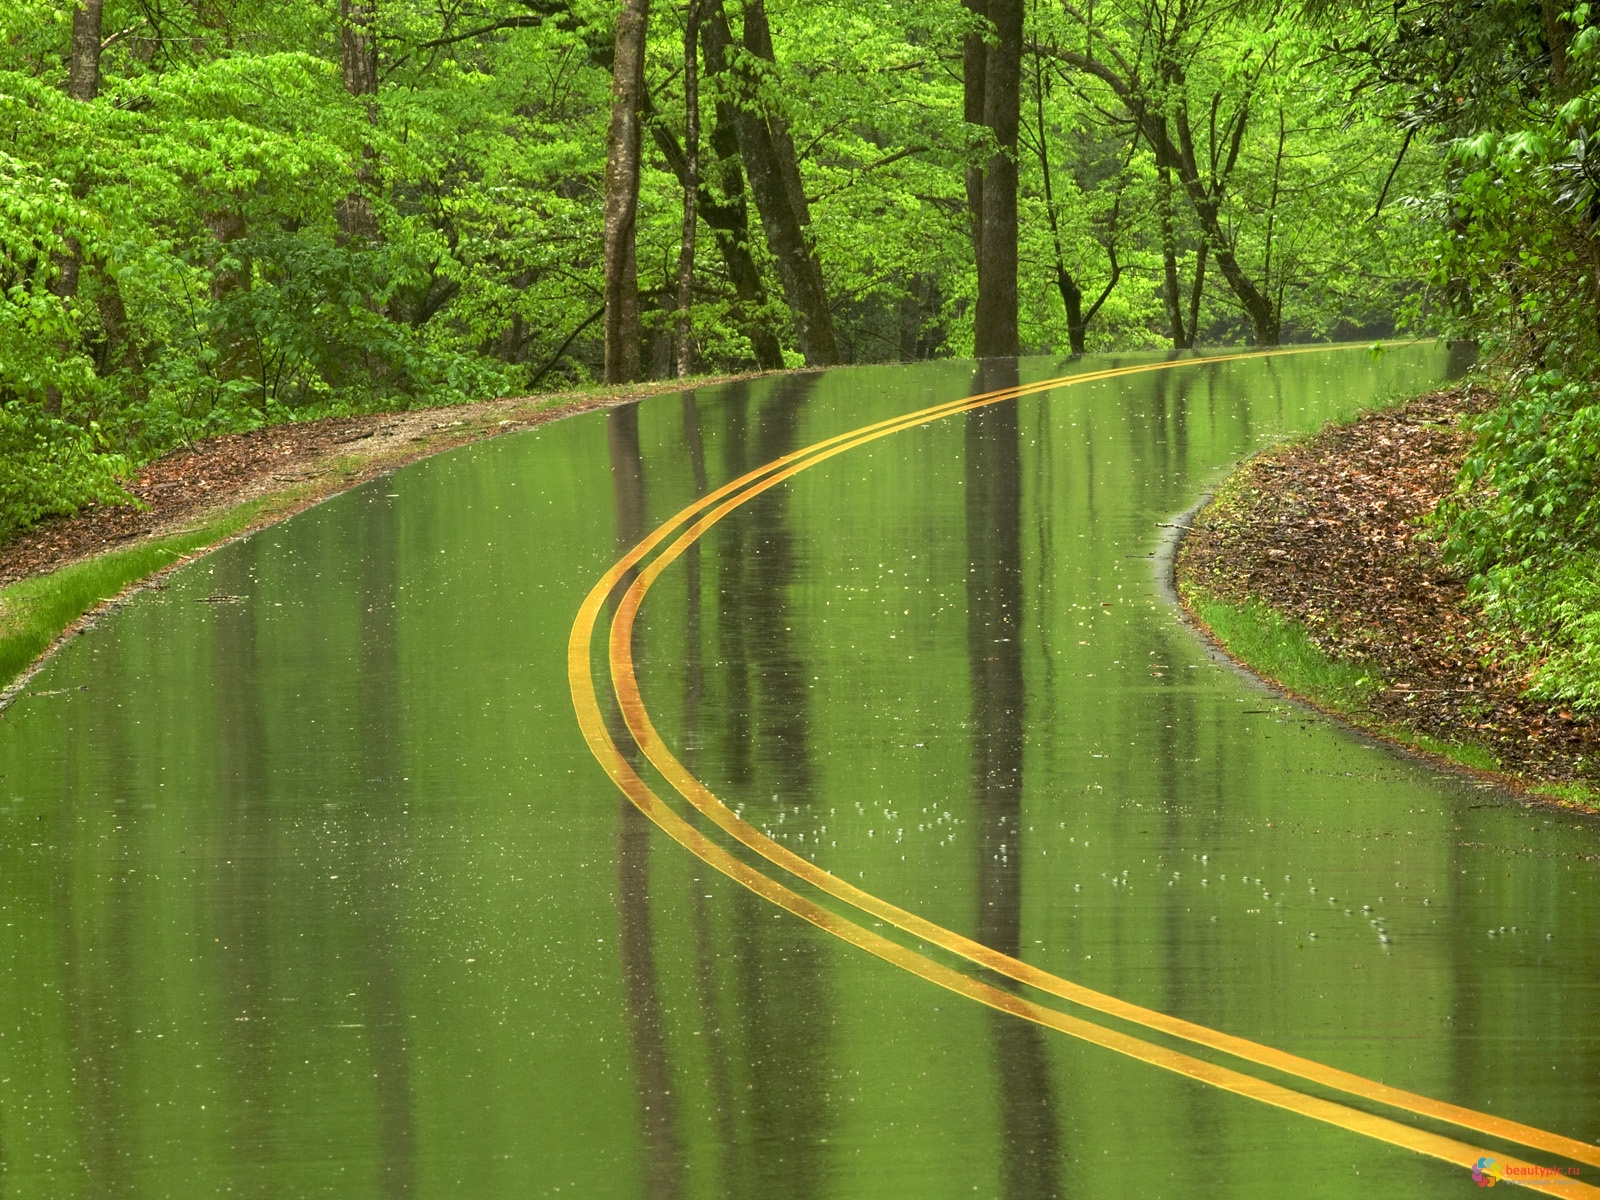 roads wet rain trees forest